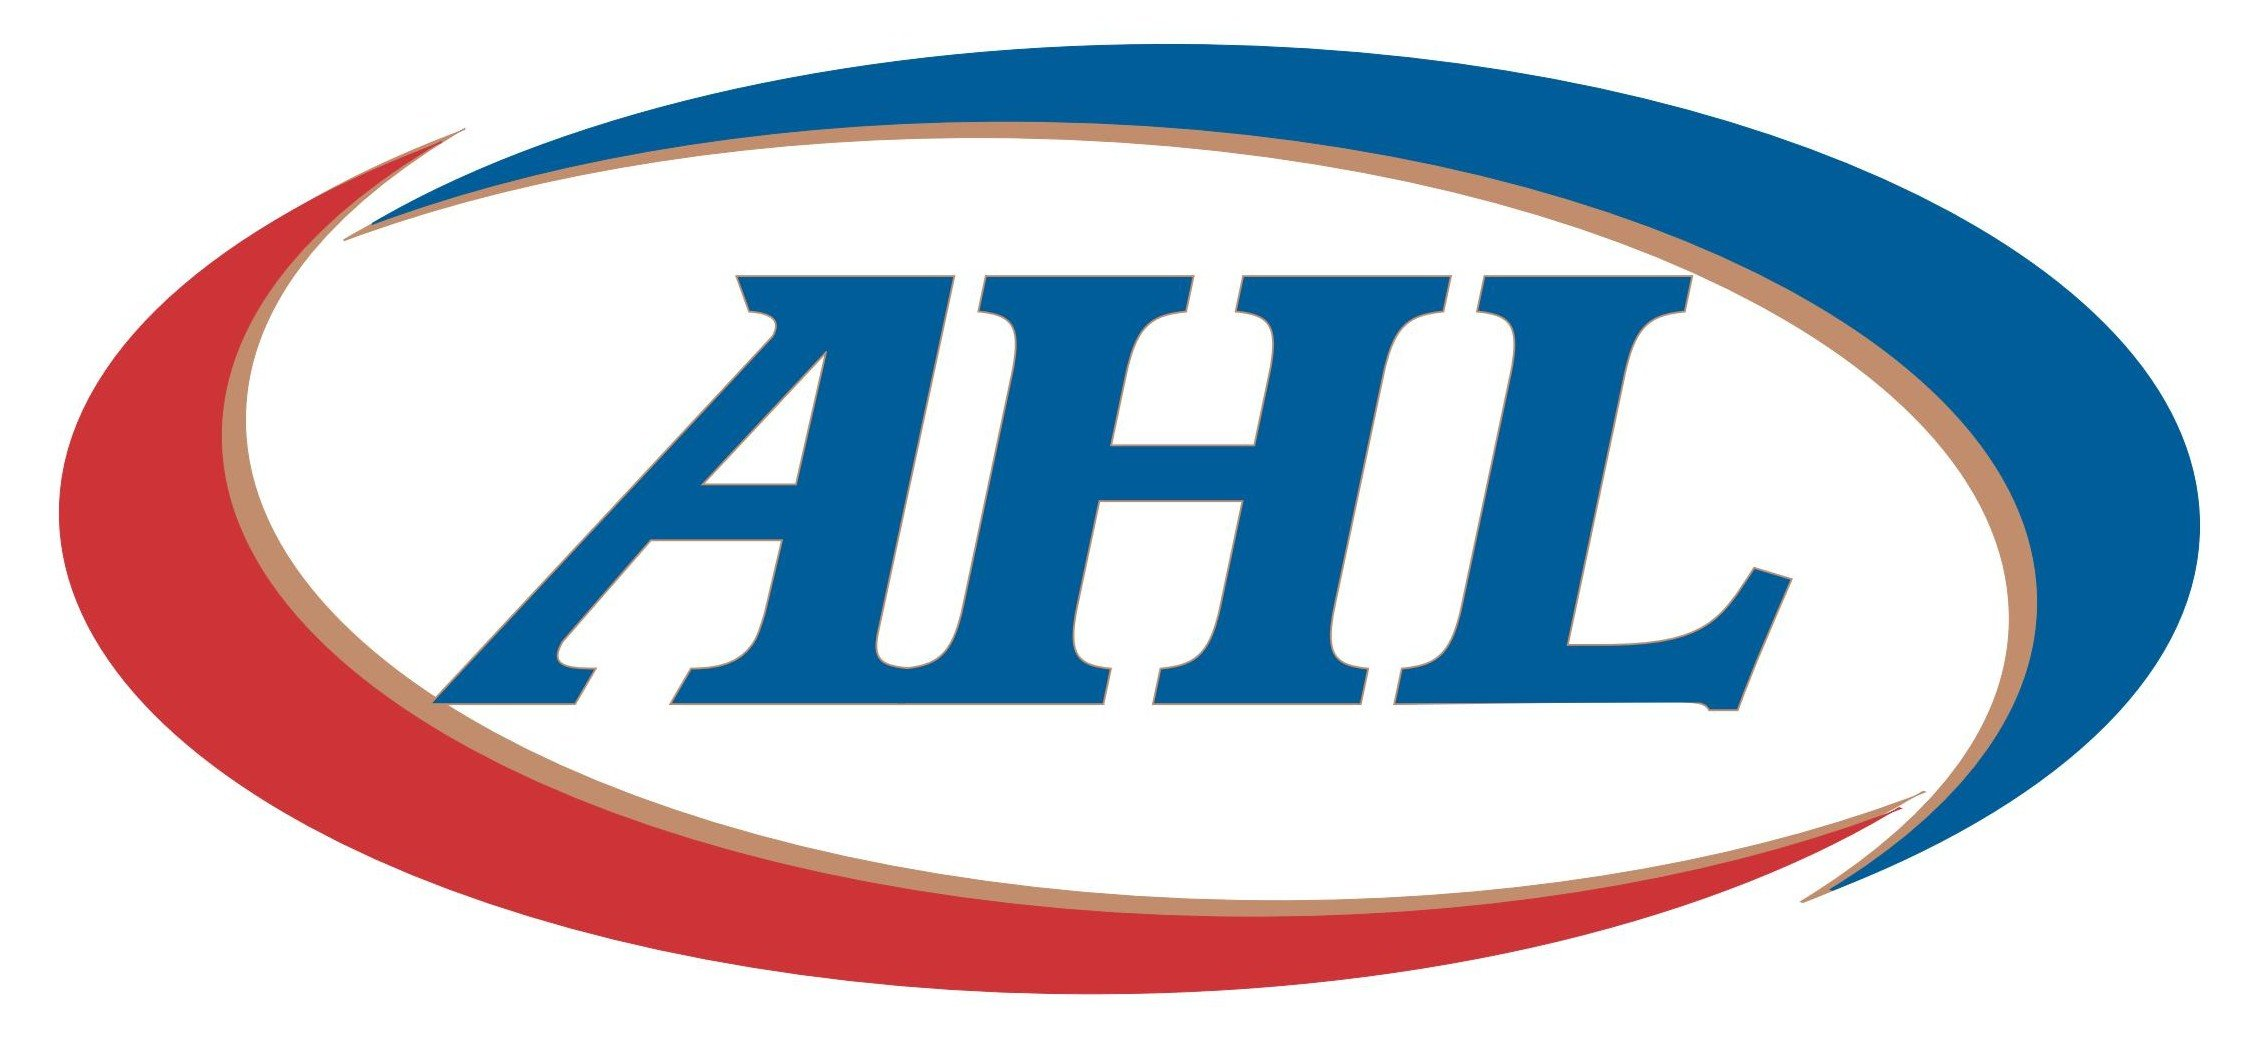 AHL Logo [American Hockey League] Vector EPS Free Download, Logo, Icons, Brand Emblems